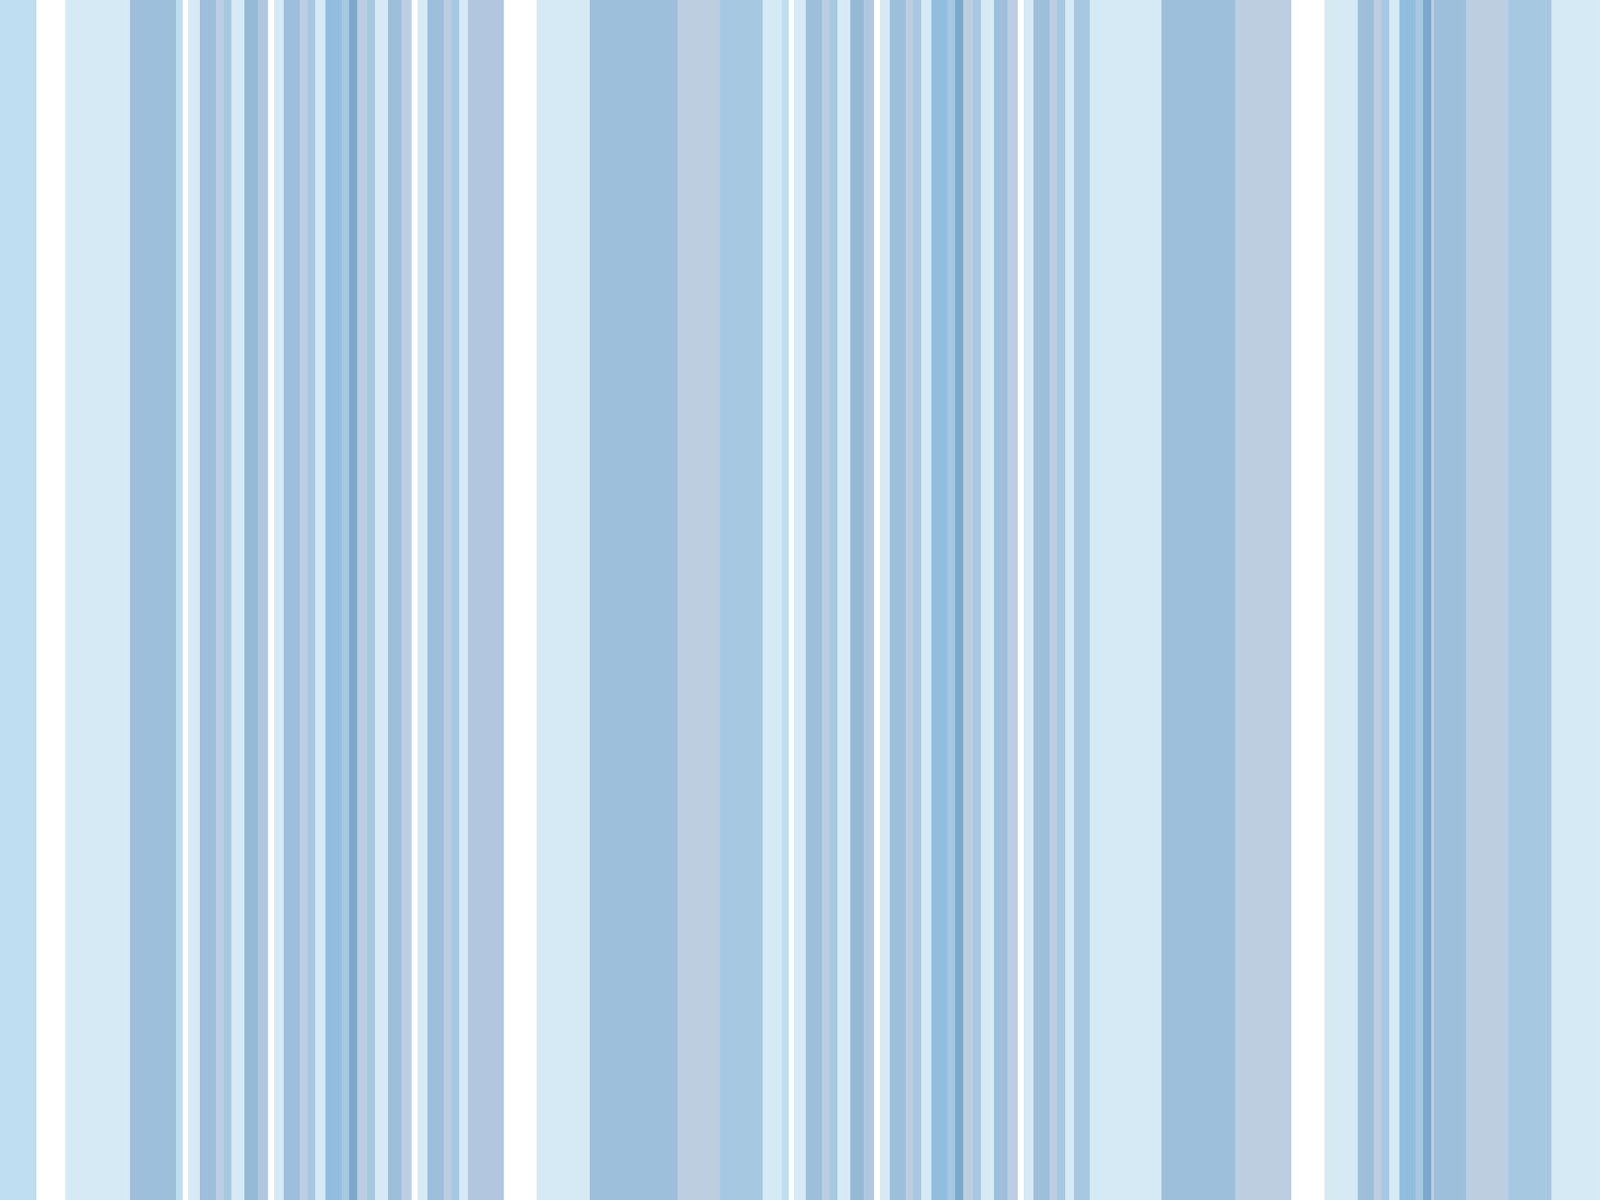 Blue And Yellow Striped Wallpaper: Download Striped Wallpaper